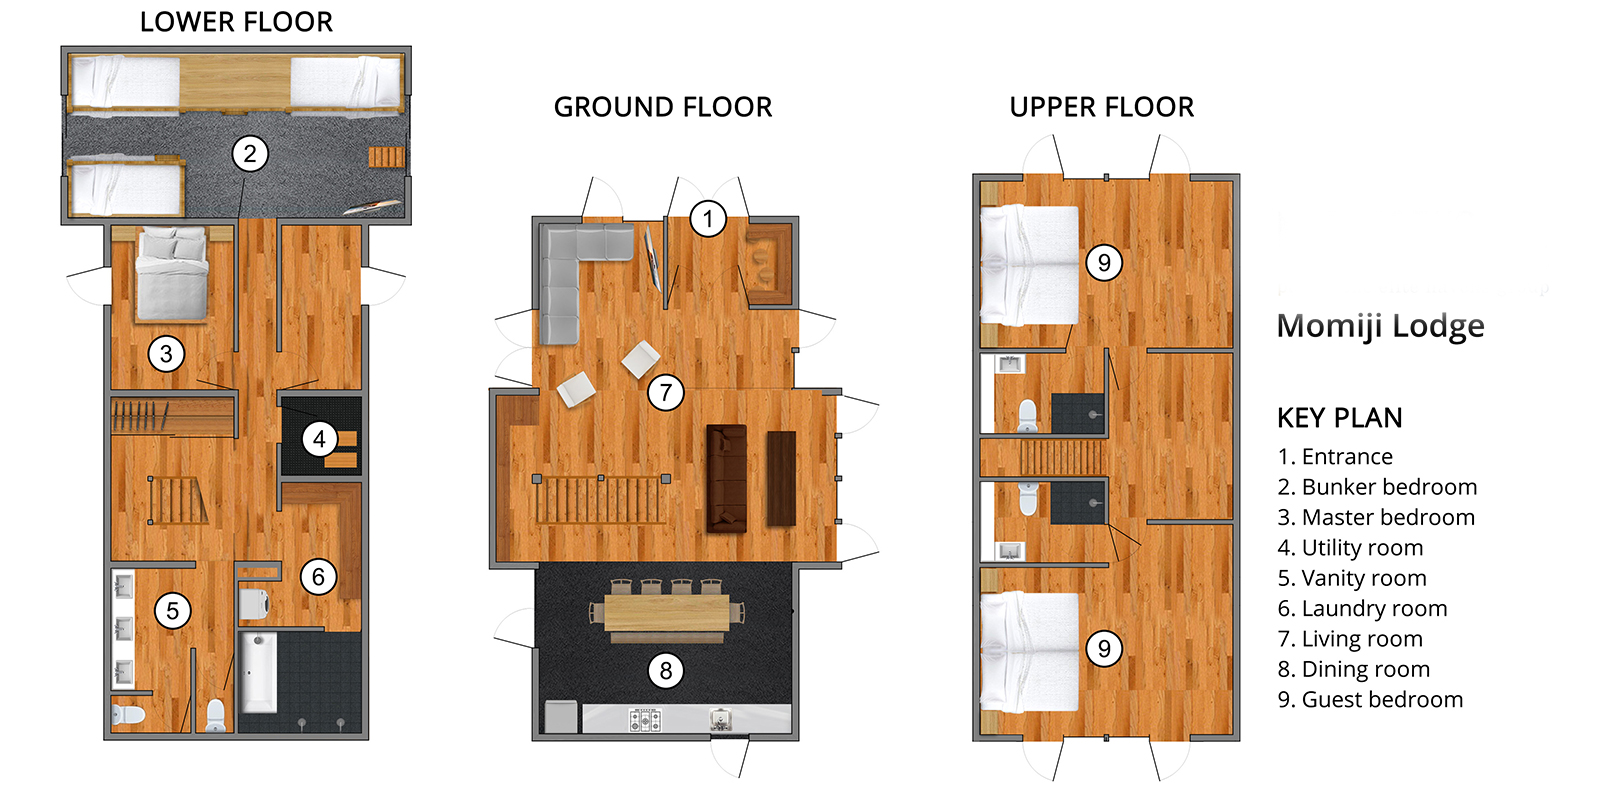 Momiji Lodge Floor Plan | Niseko, Niseko